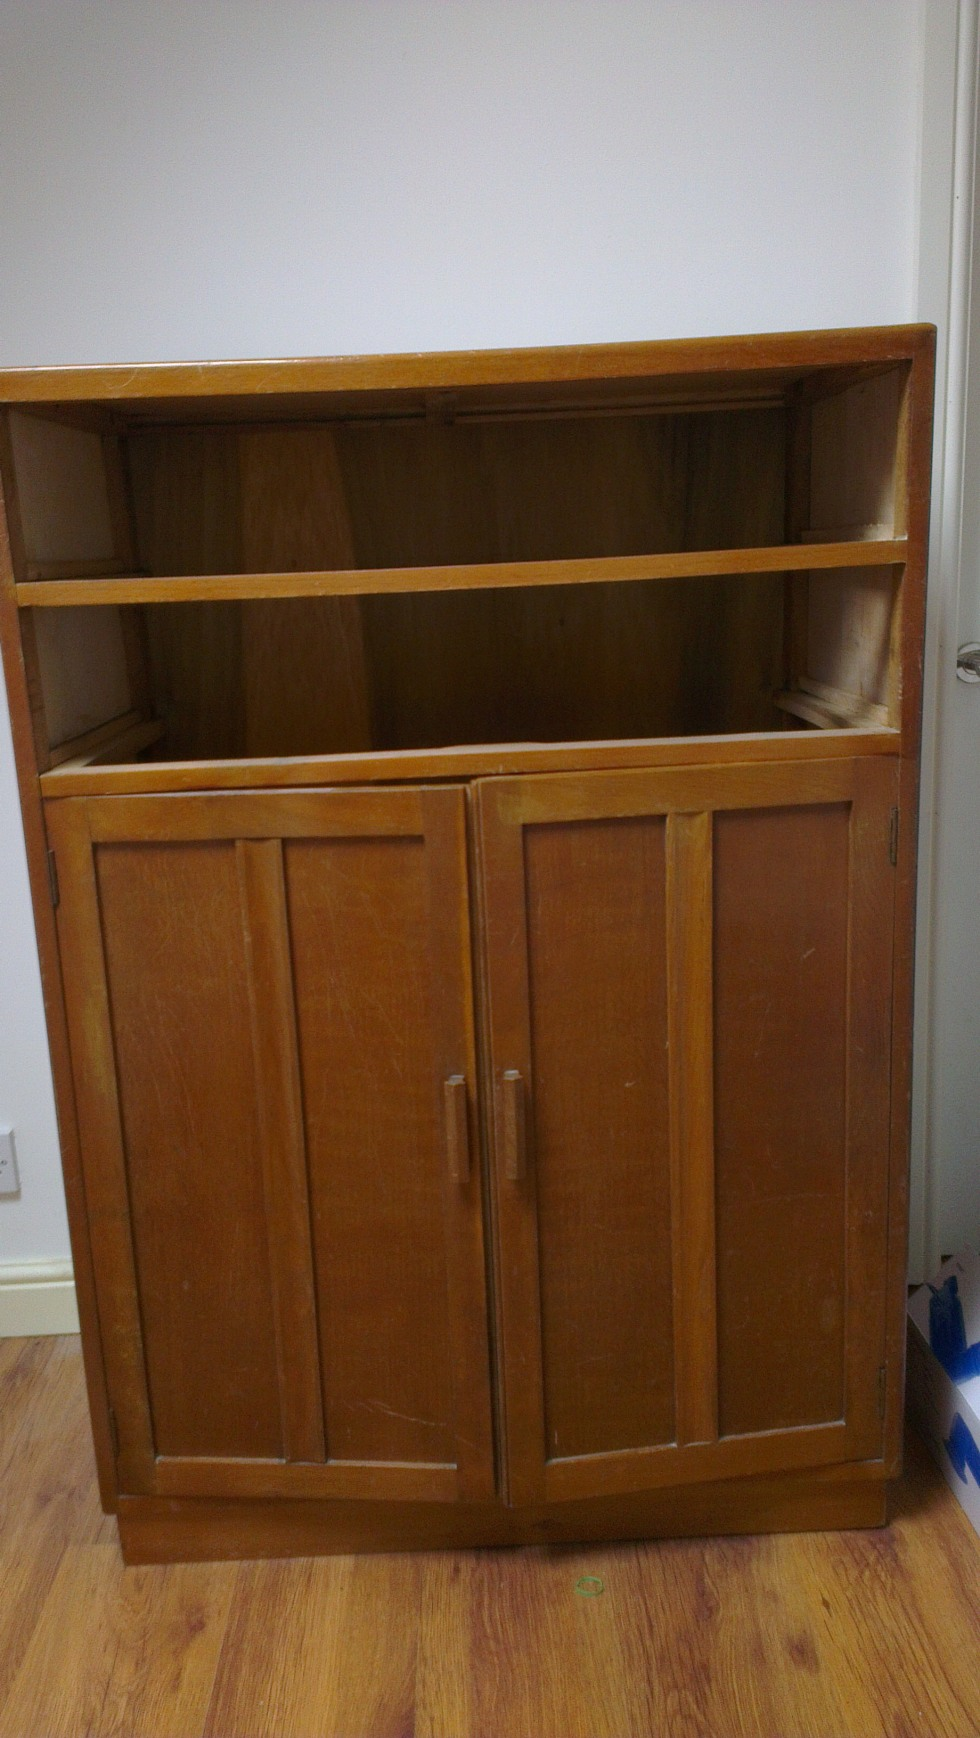 1930s cupboard before